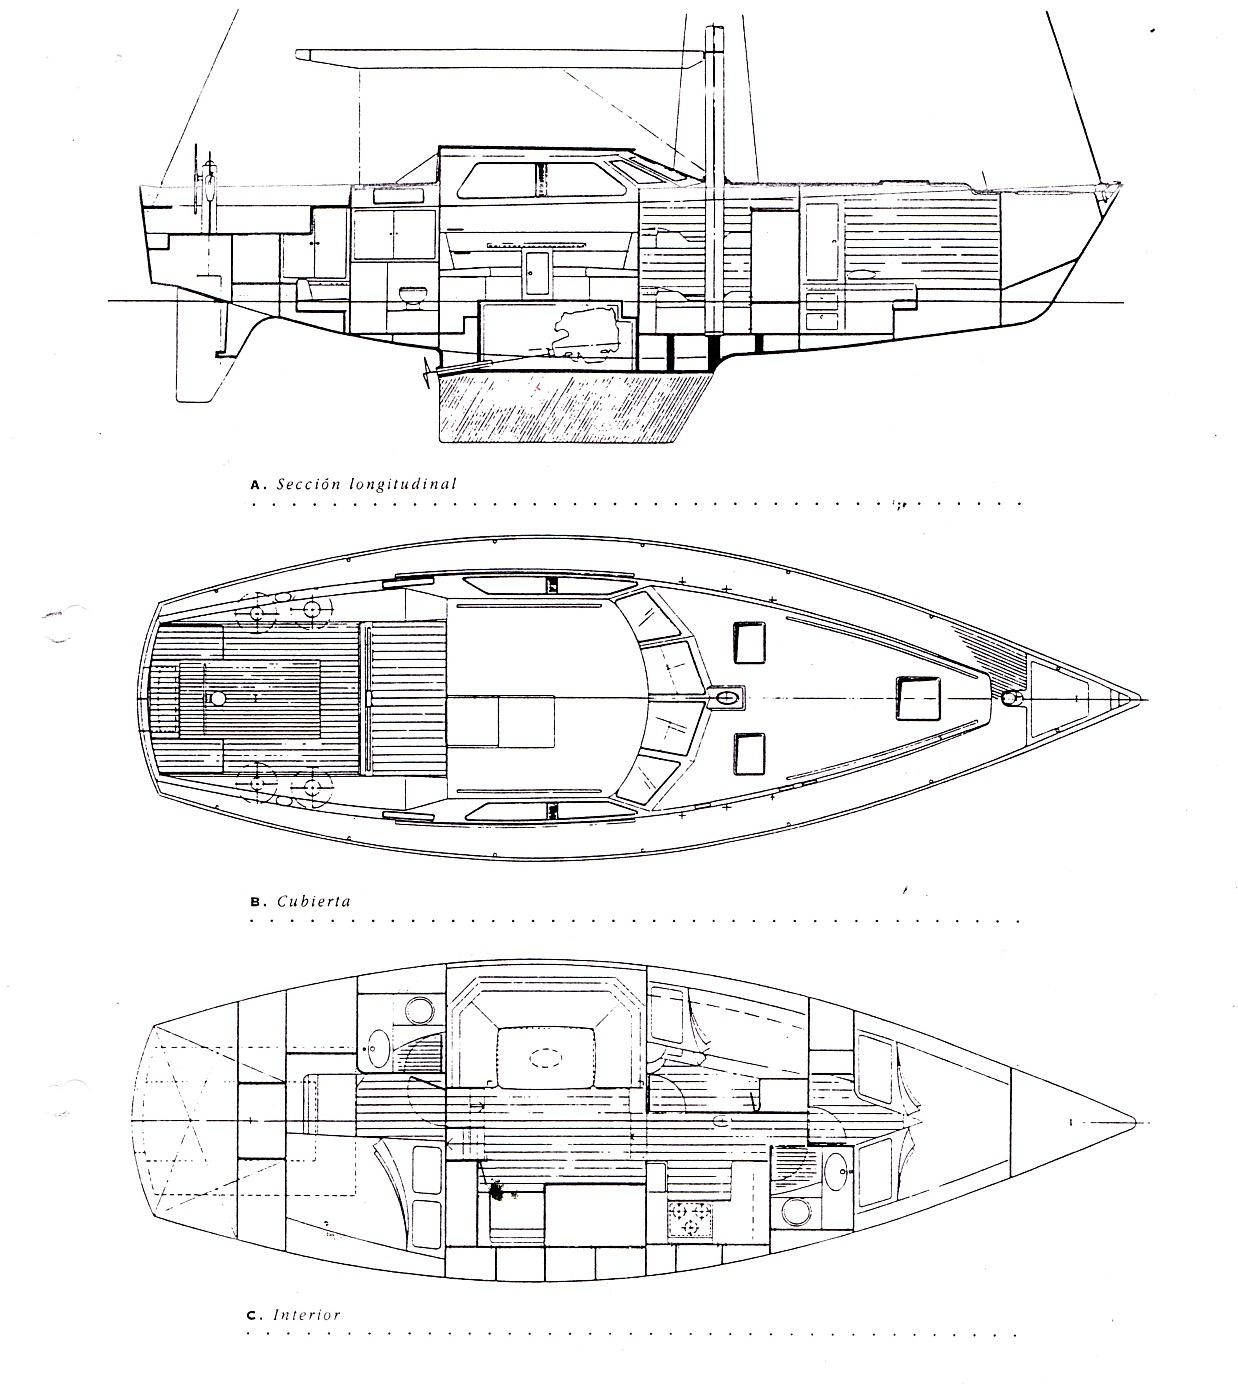 medium resolution of spi lifeboat diagram wiring diagram blogs 1991 north wind 41 sail boat for sale www yachtworld